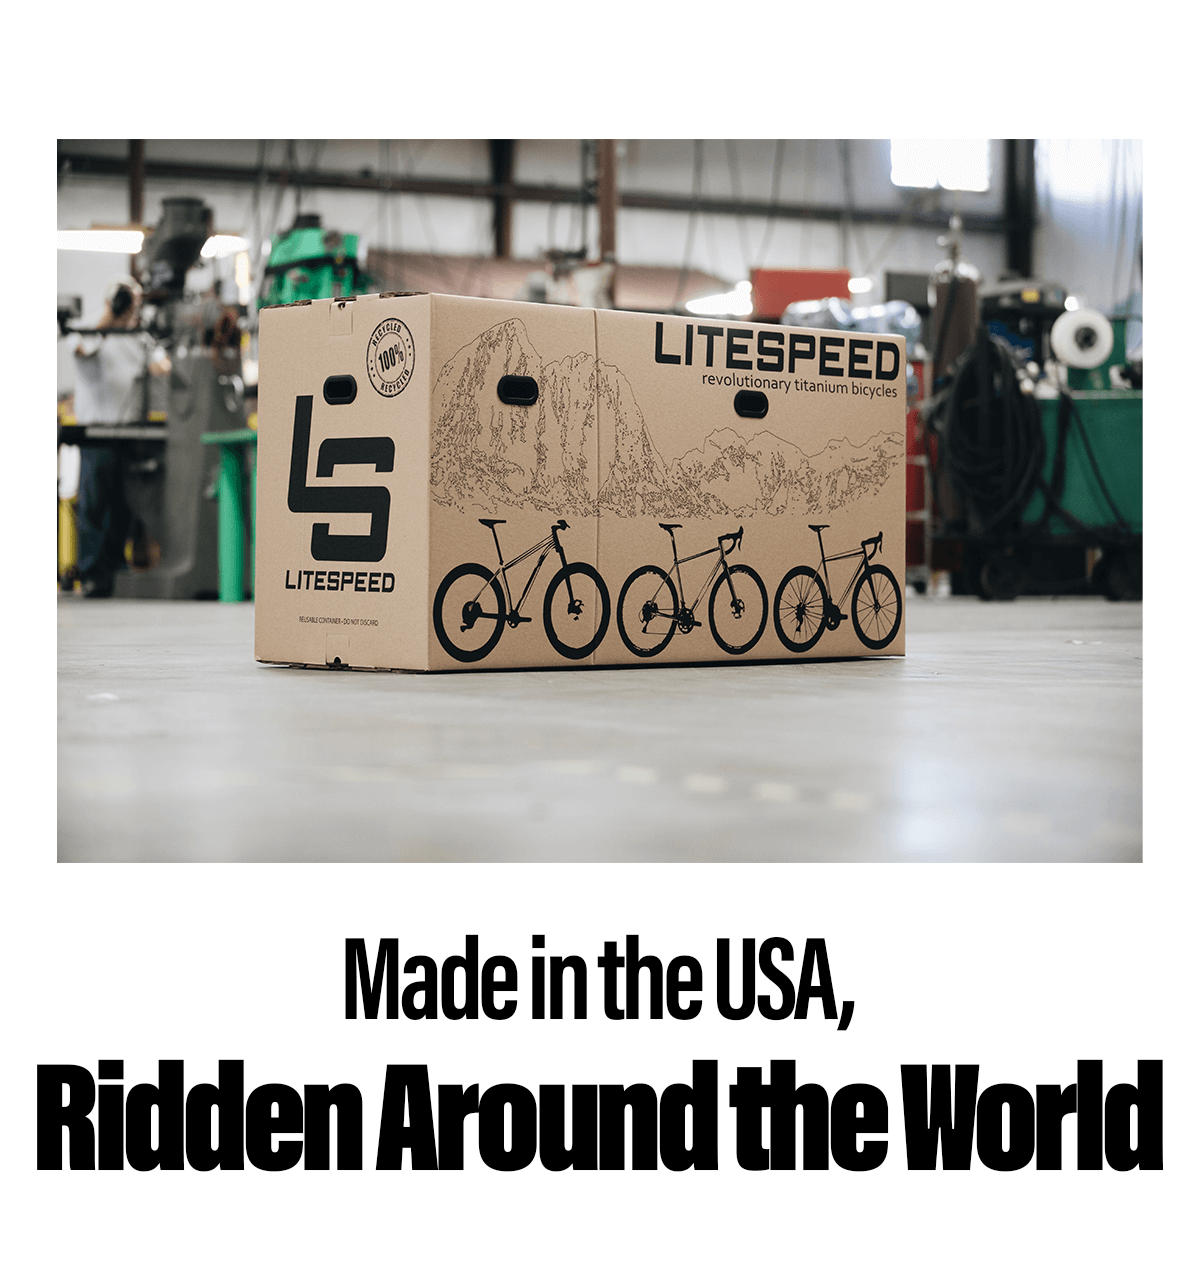 Made in the USA, Ridden around the world.